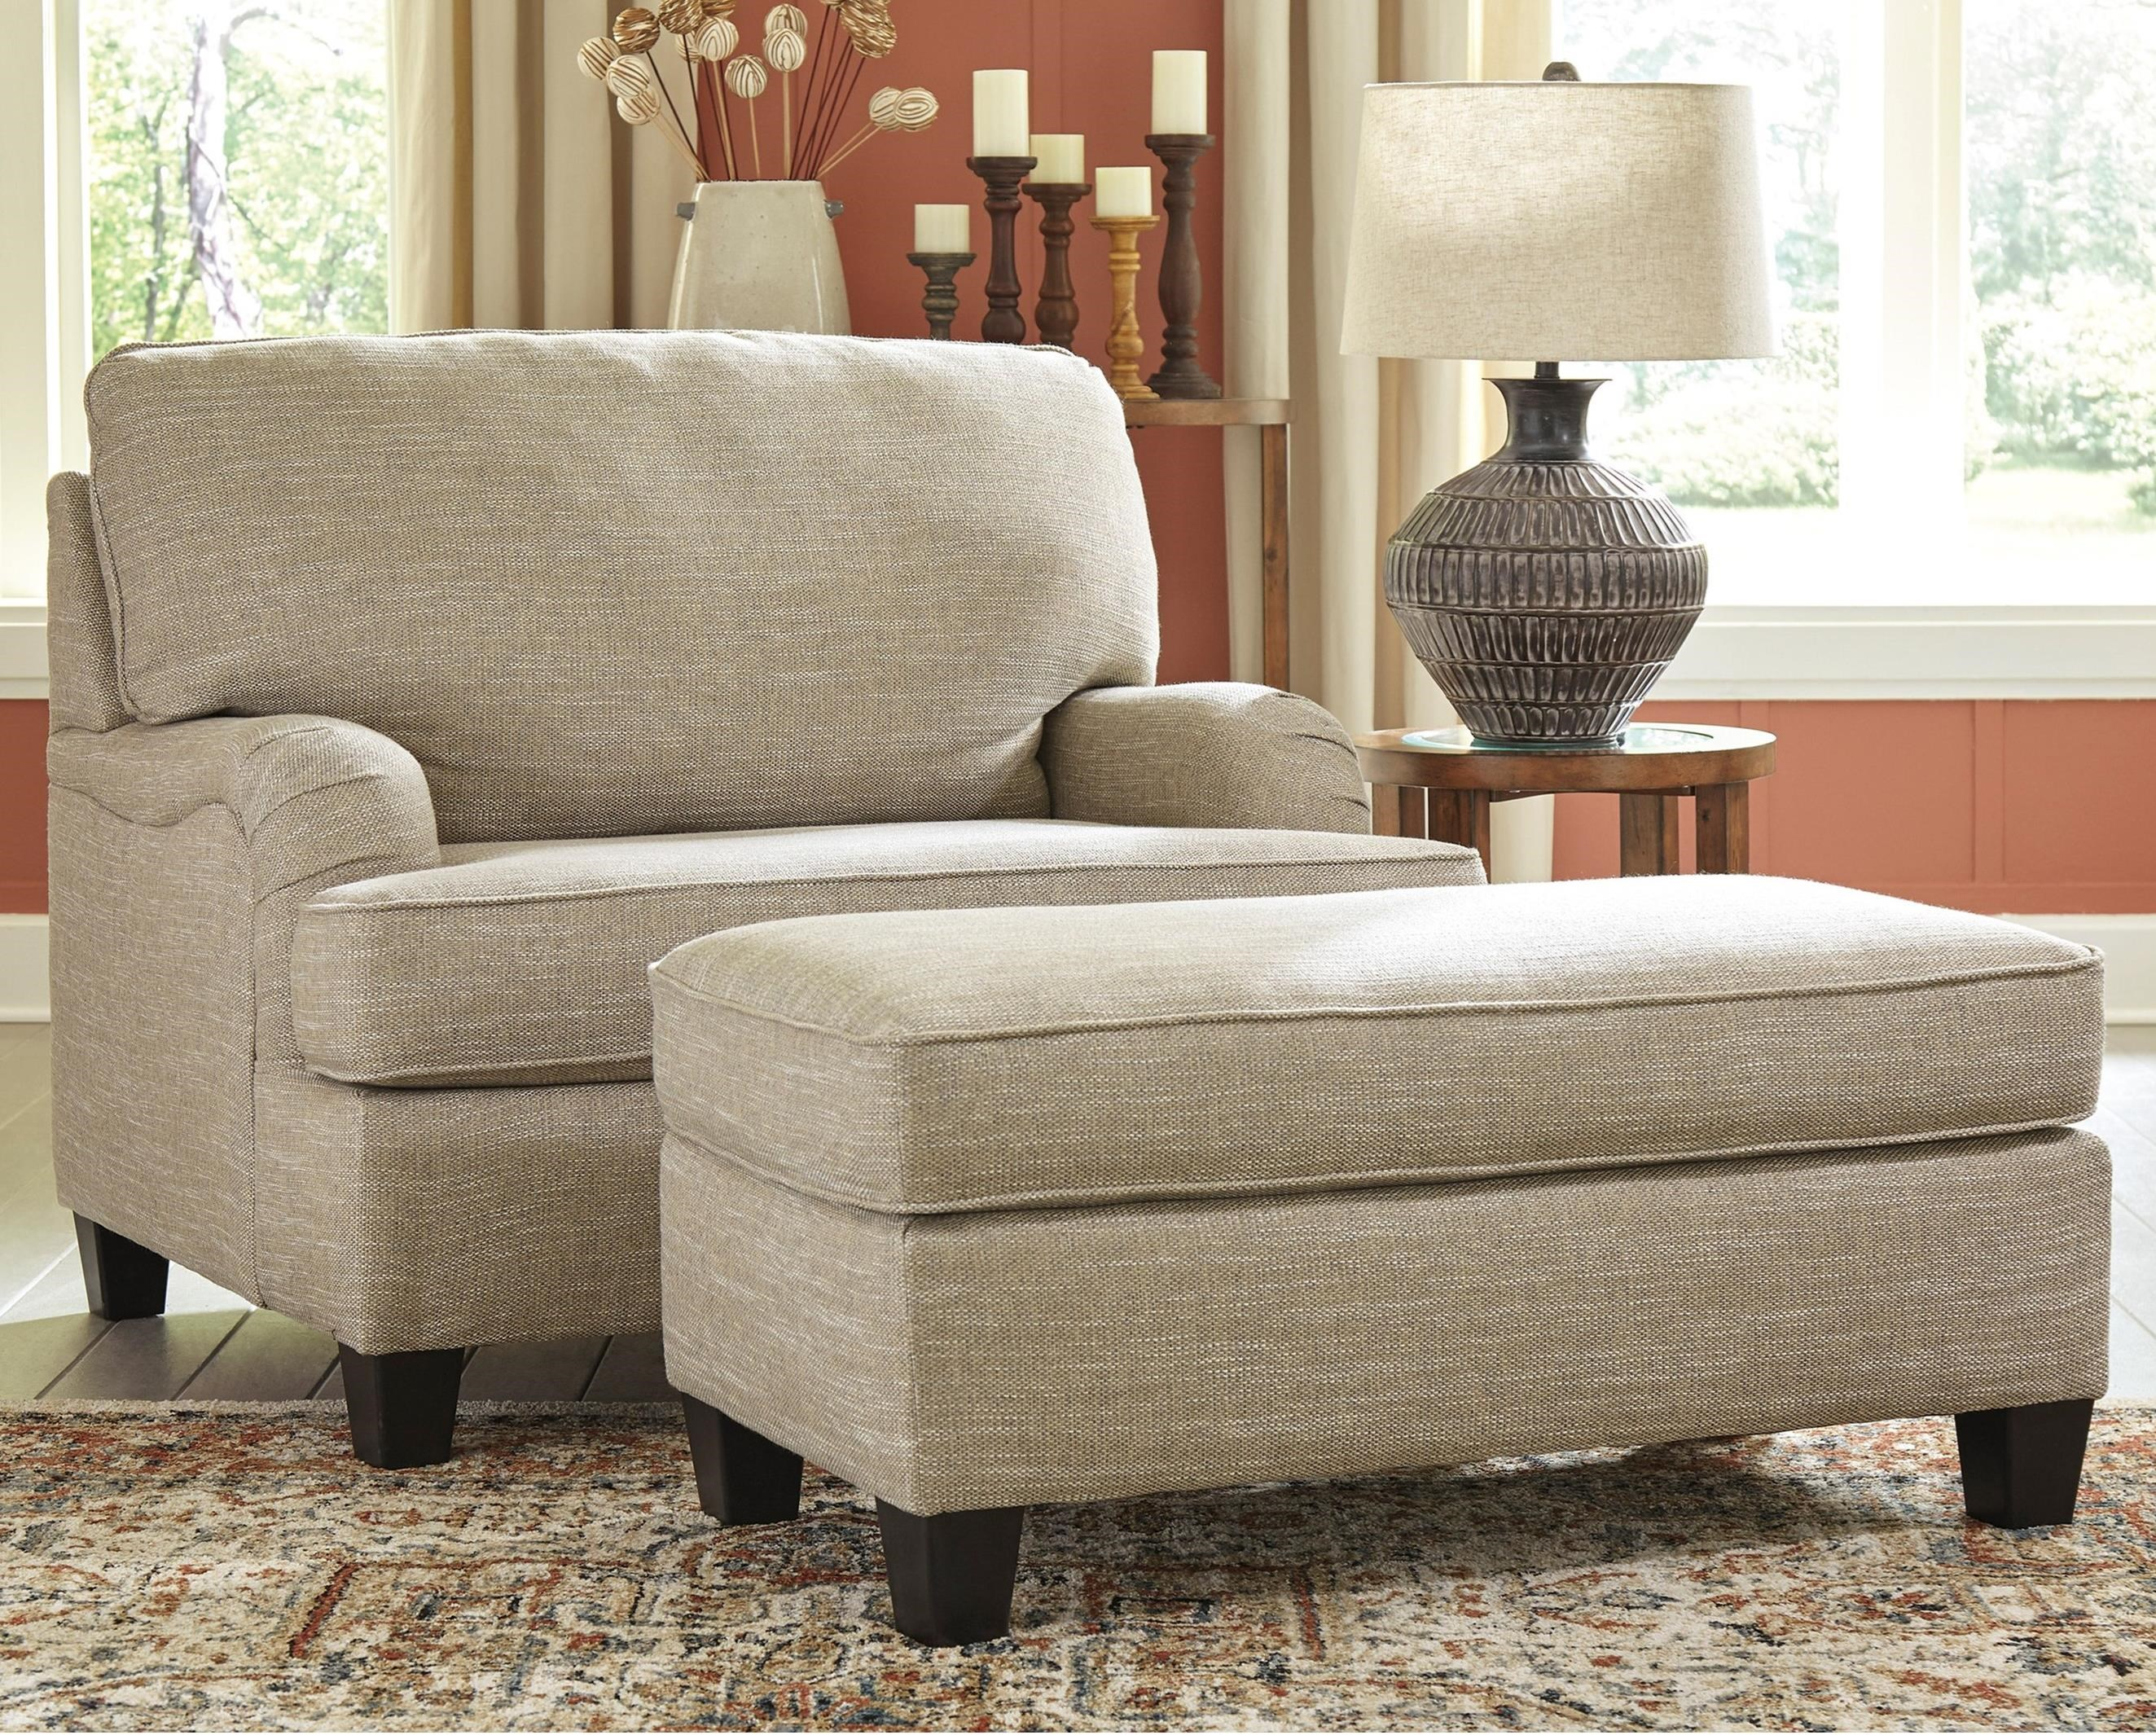 Almanza Chair and a Half and Ottoman by Signature Design by Ashley at Sparks HomeStore